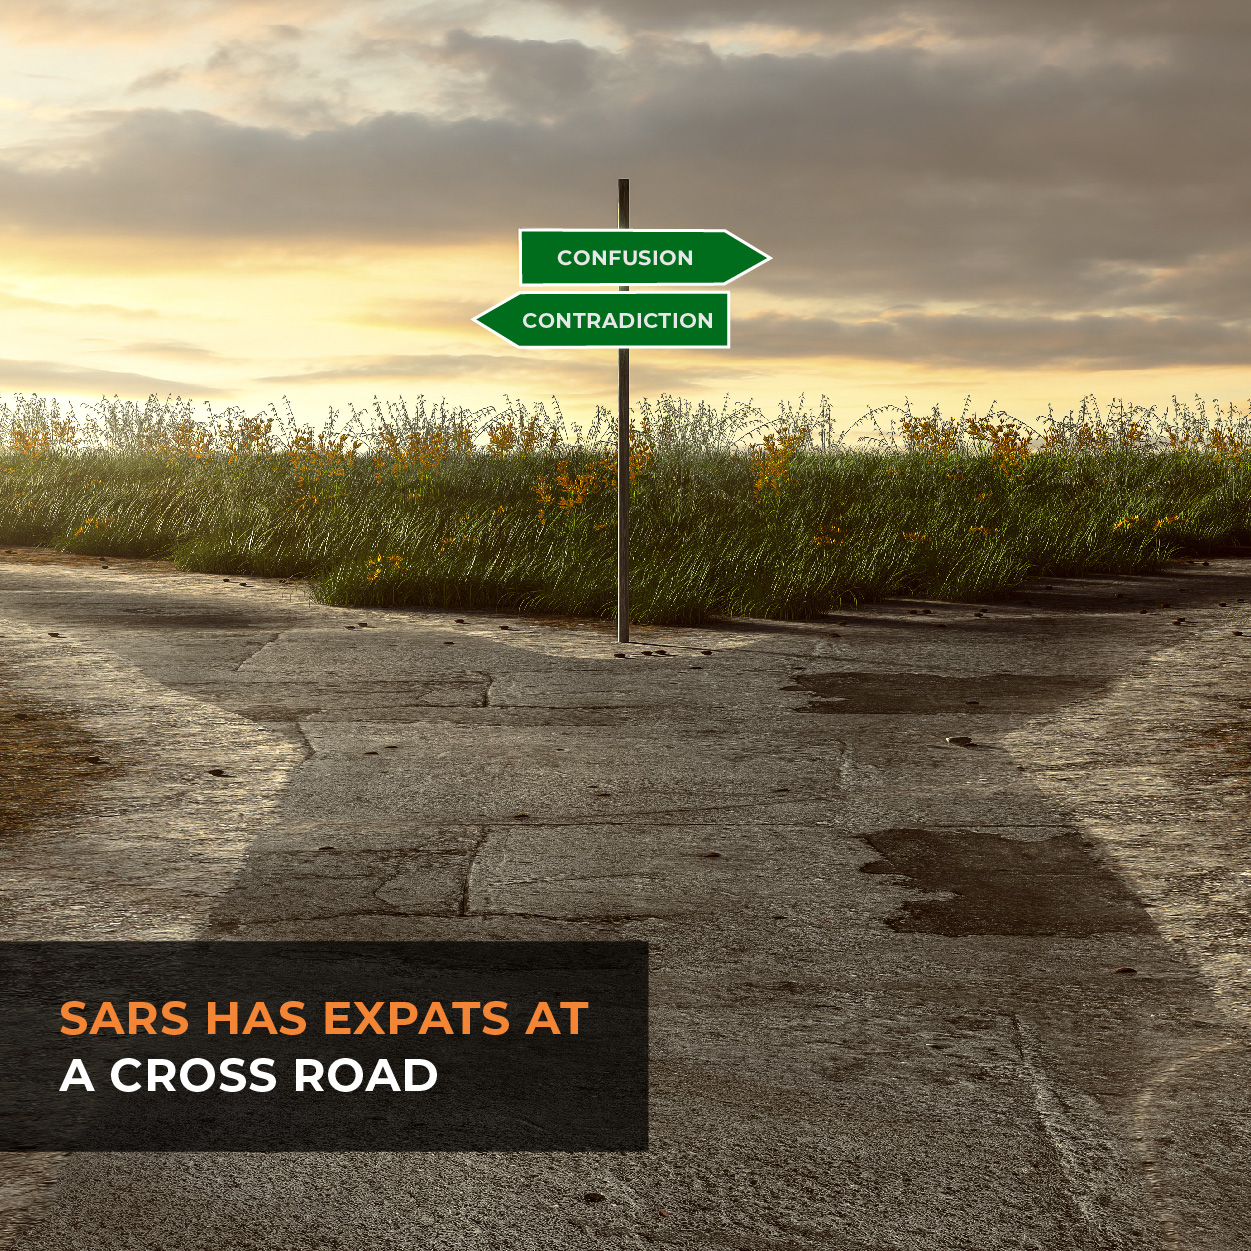 SARS has expats at a cross road